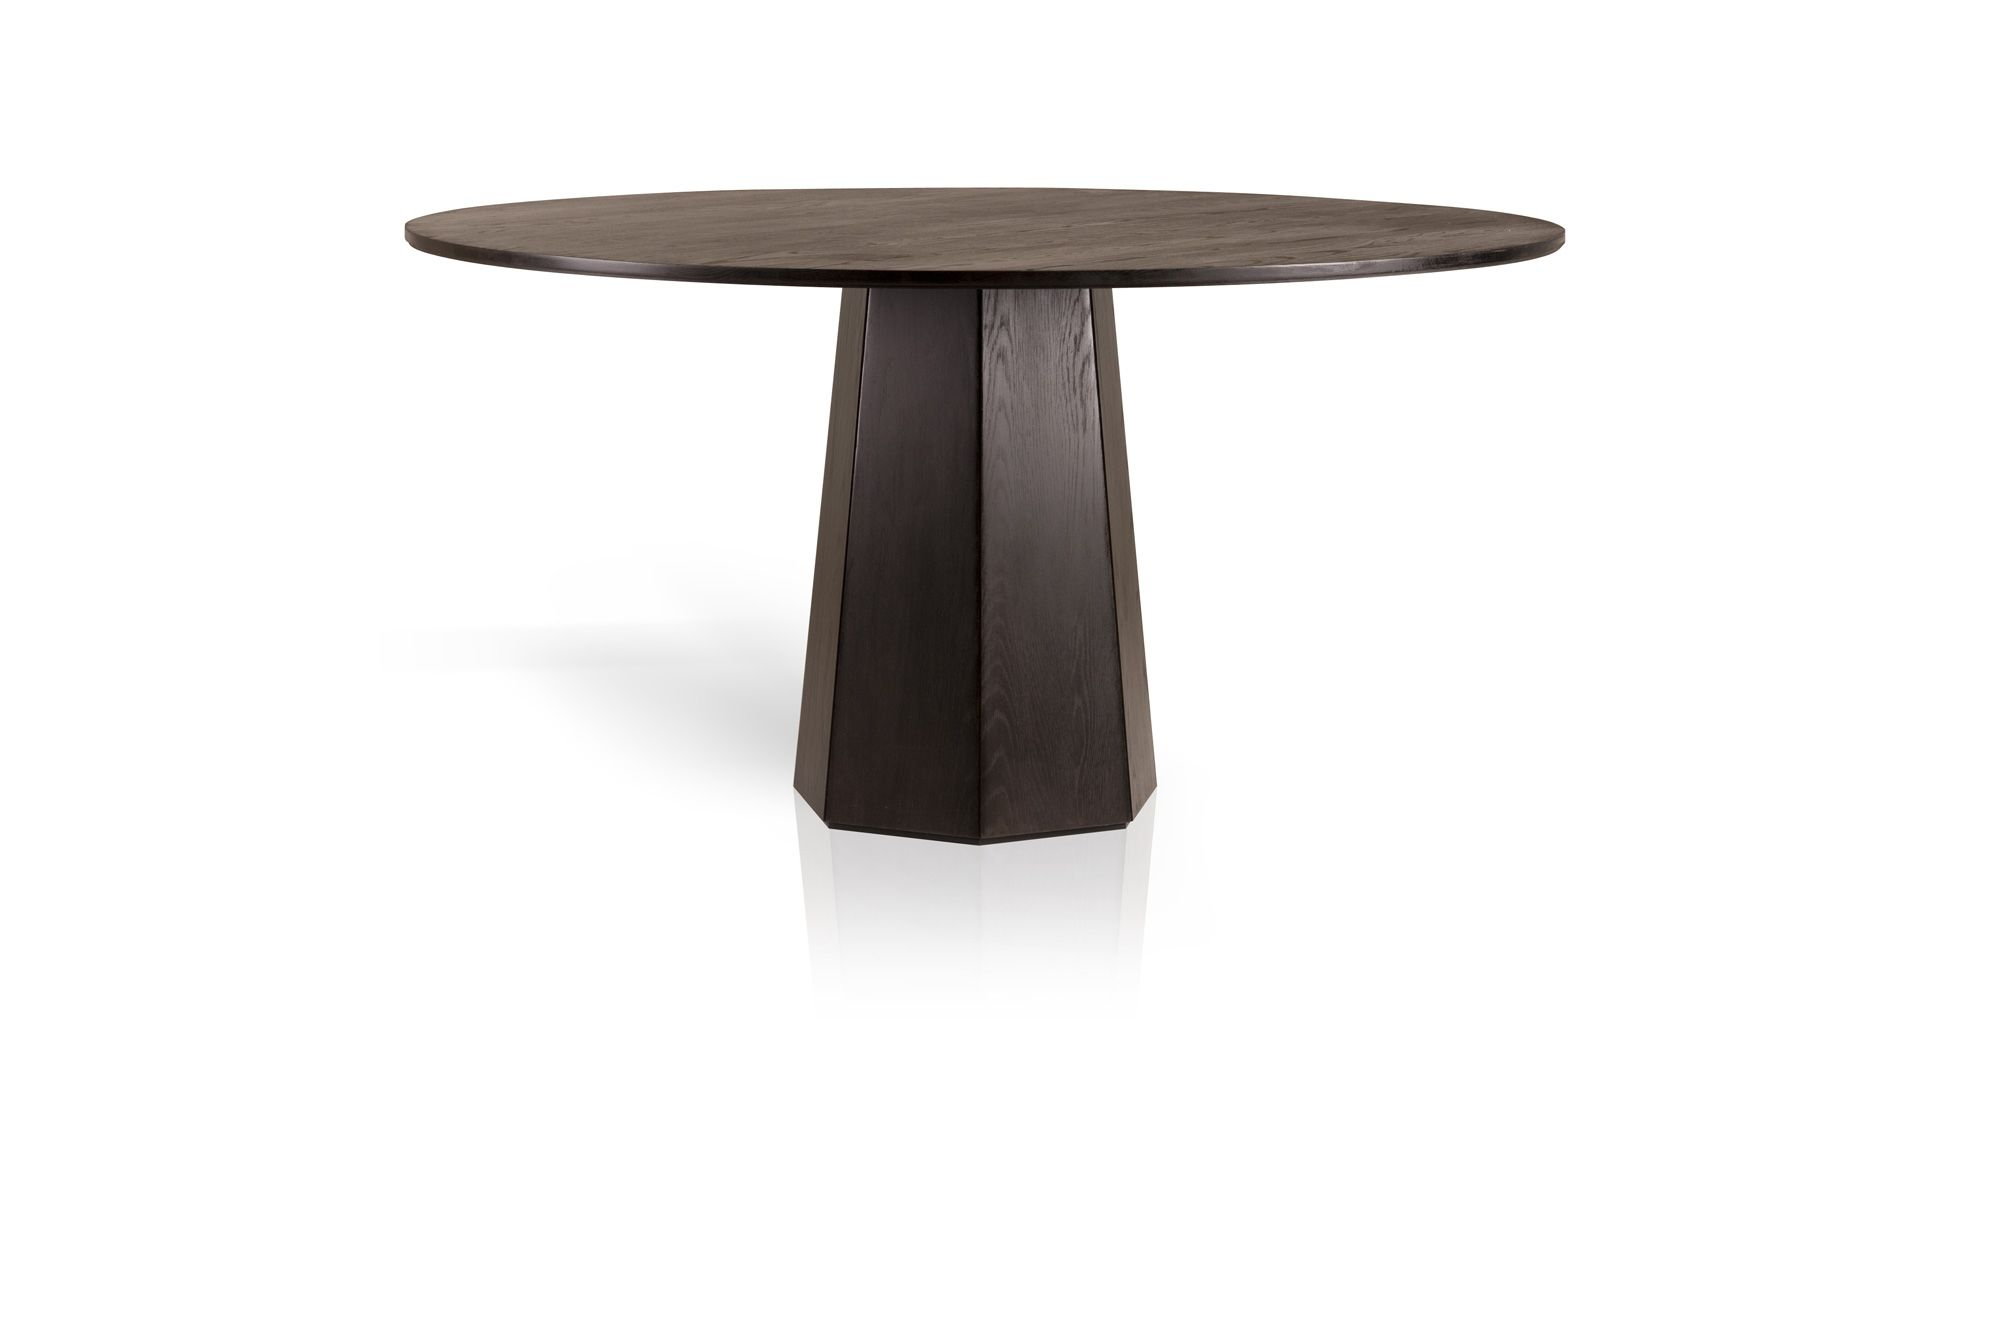 Fabulous Dark Brown Octagonal Pedestal Base Round Top As Coffee Table Ideas With Simple Designs